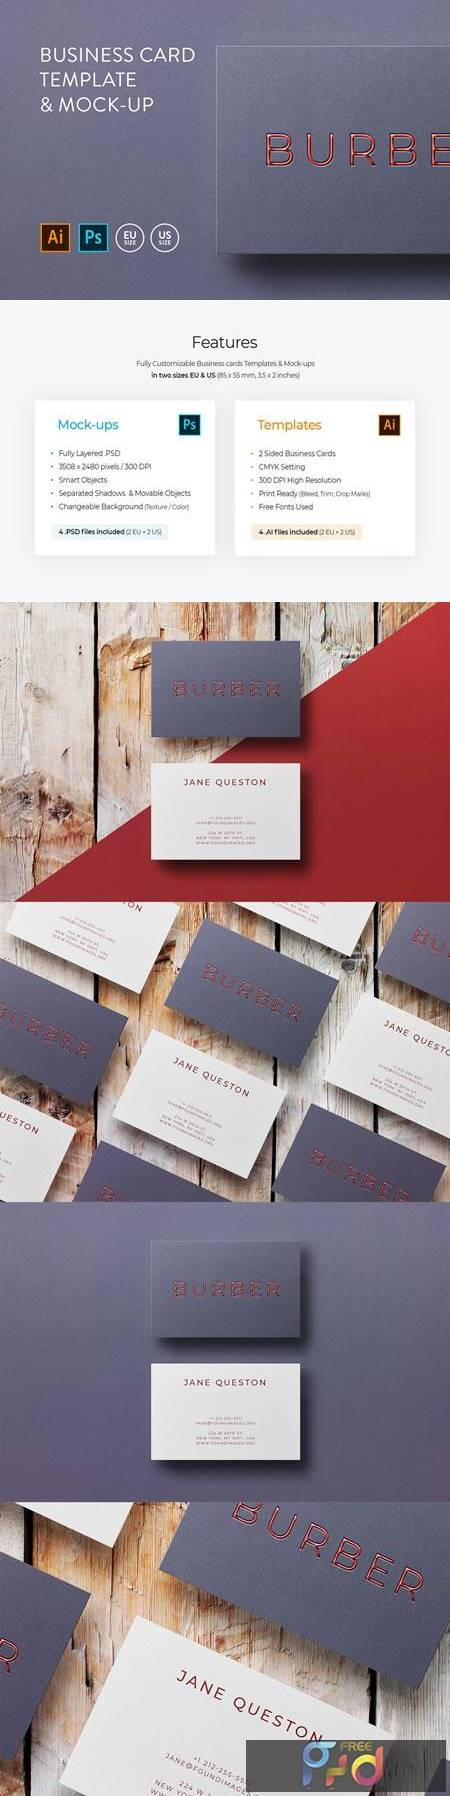 Business card Template & Mock-up #5 1